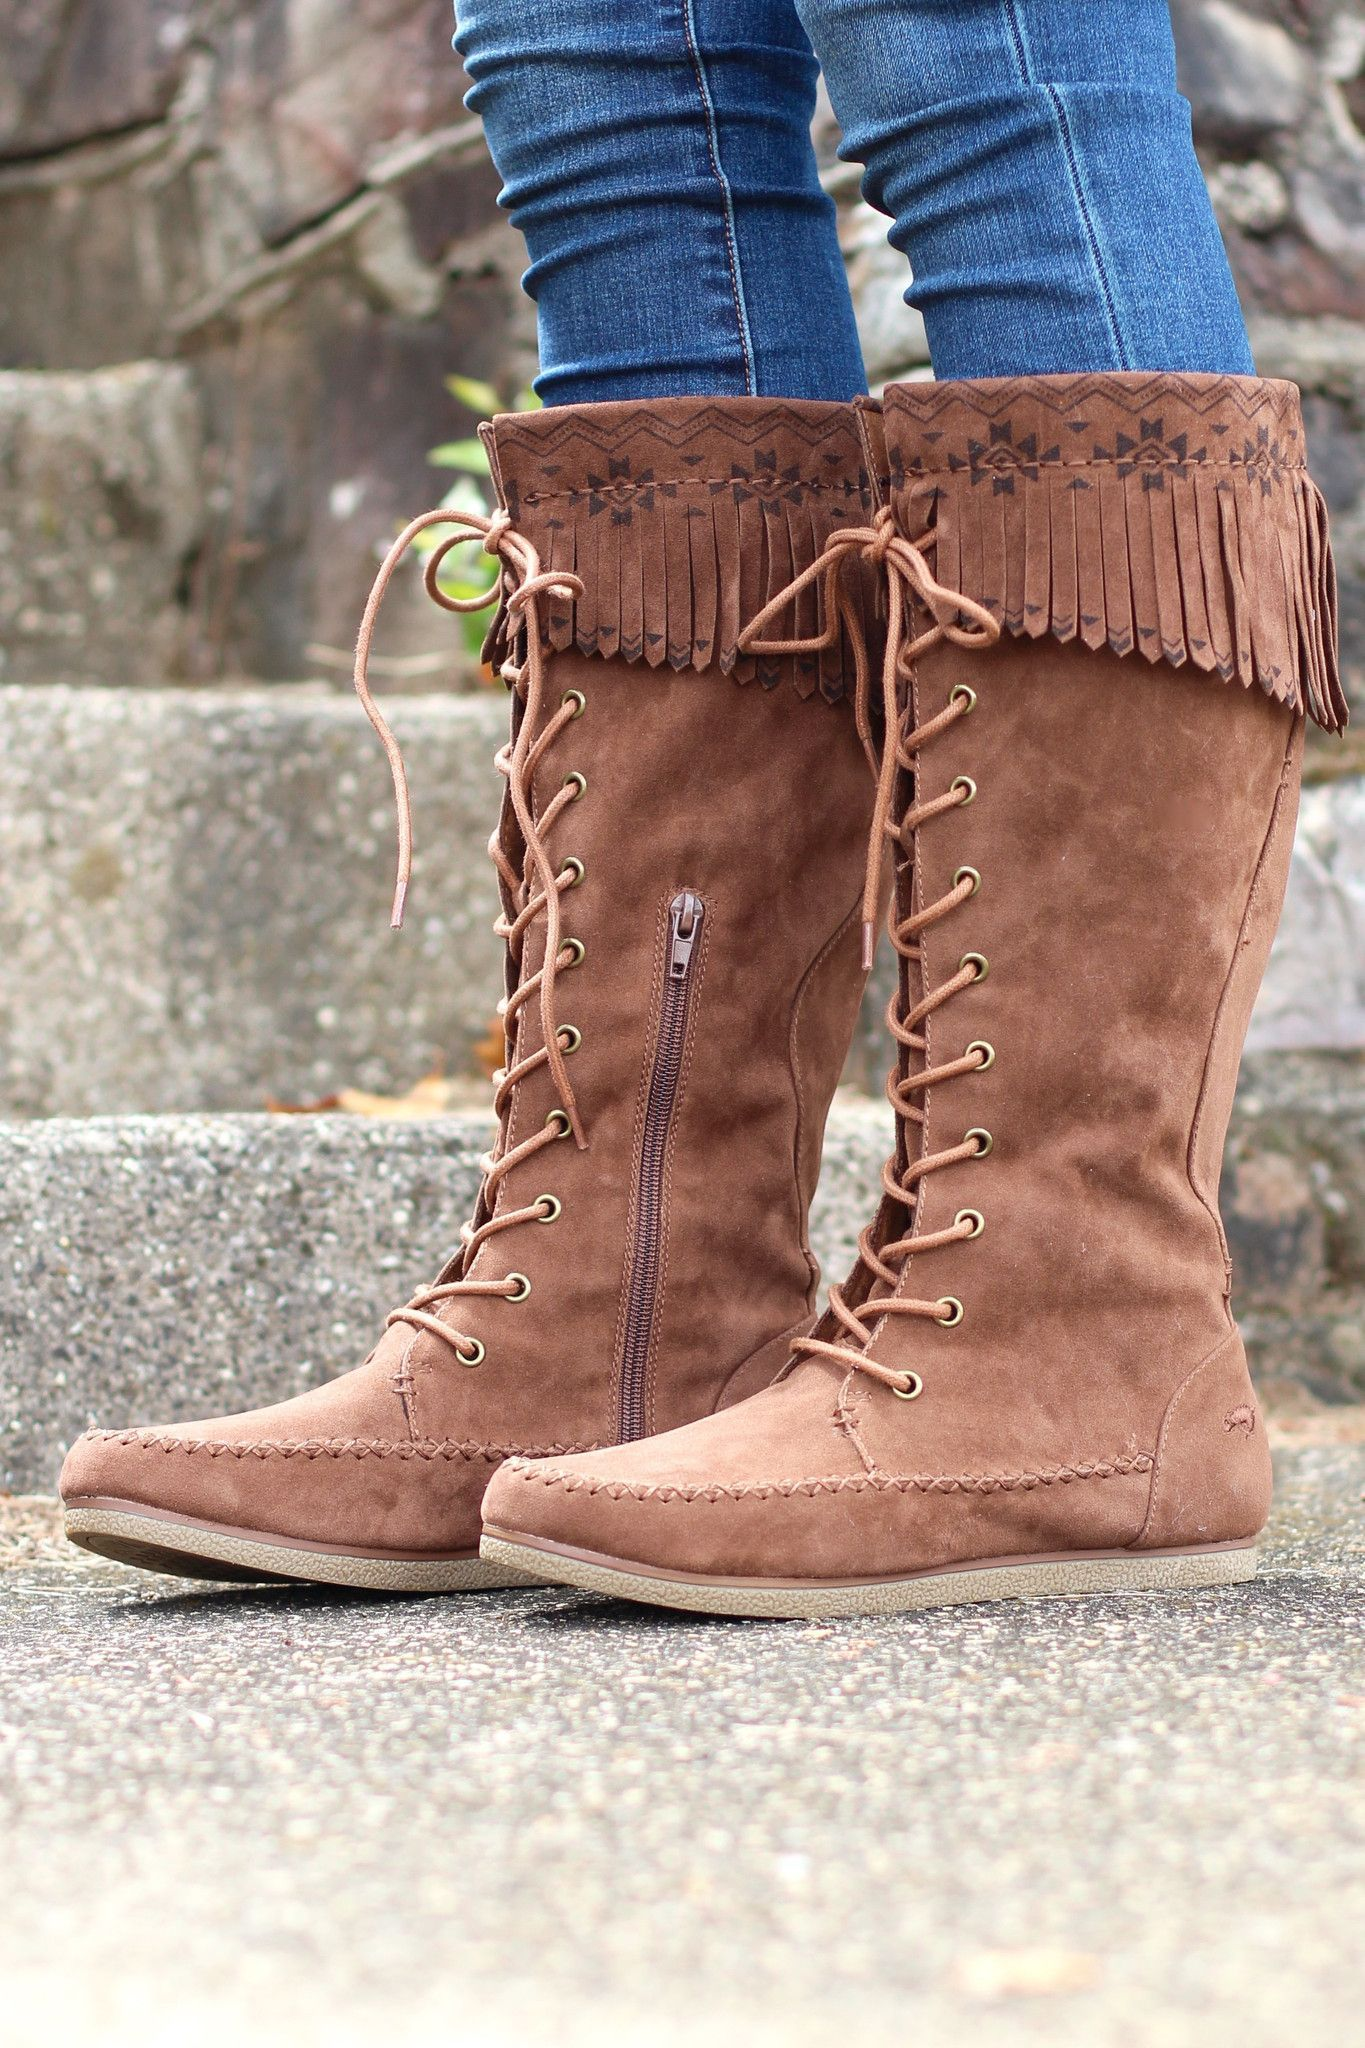 c5cbf40d4dc Veronah Lace-Up Moccasin Boot {Chestnut} in 2019 | Products ...